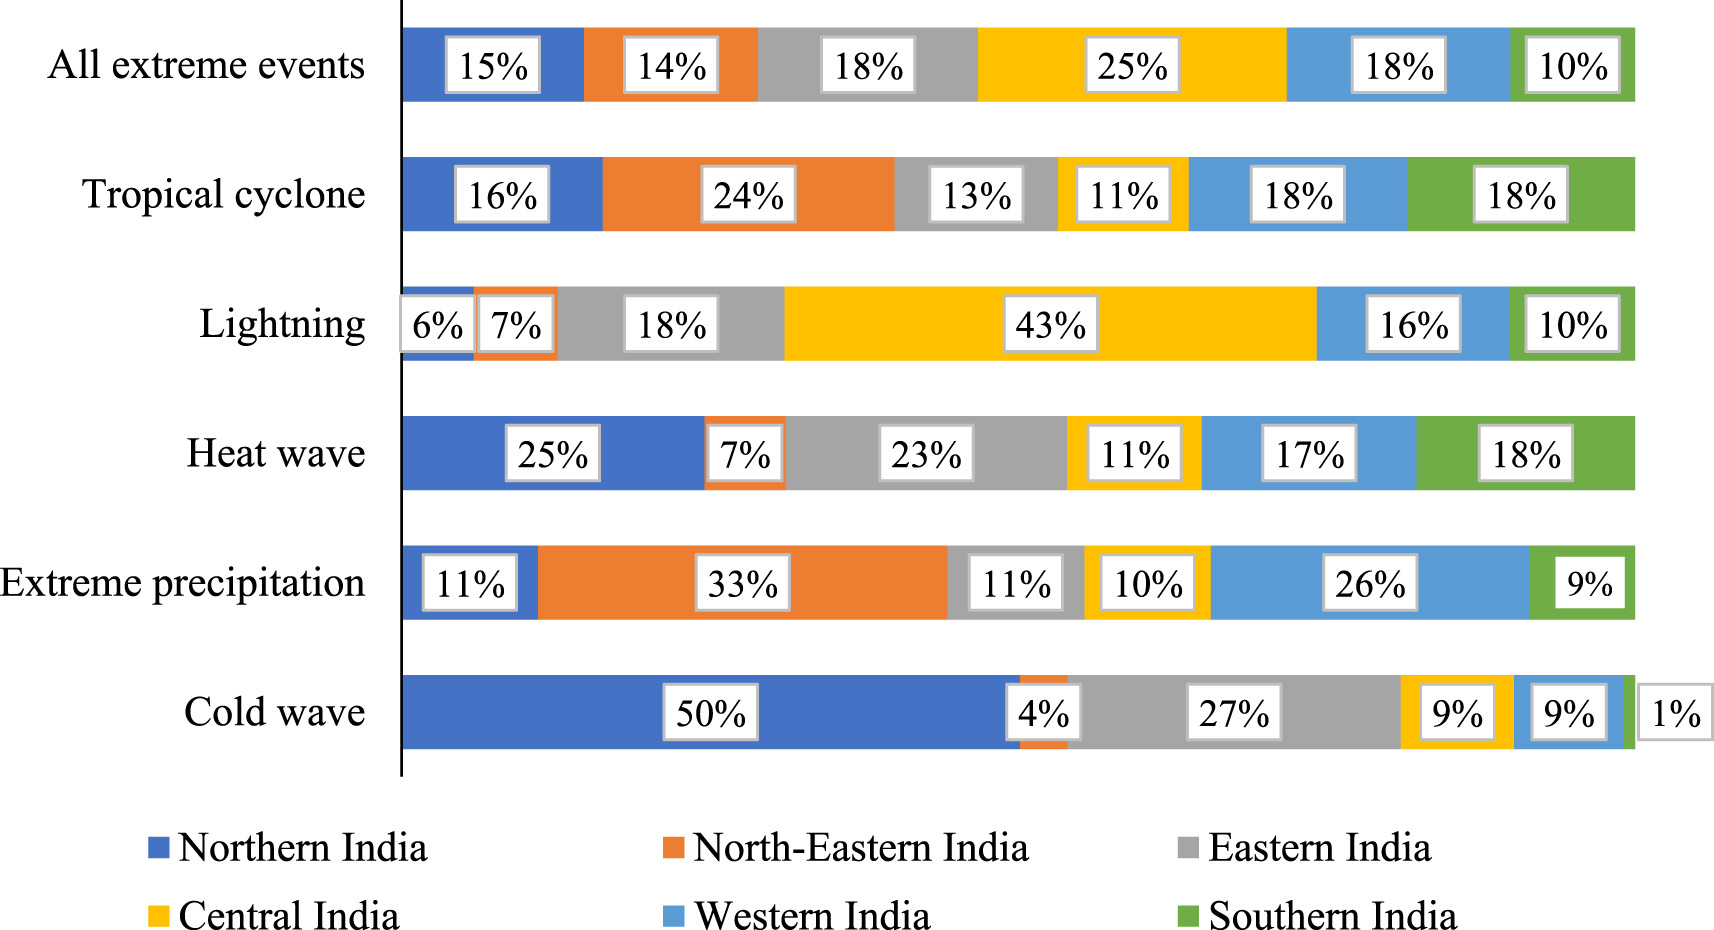 Distribution of the number of deaths due to extreme weather events by regions of India, 2001-14. Graphic by Bidhubhusan Mahapatra et al.